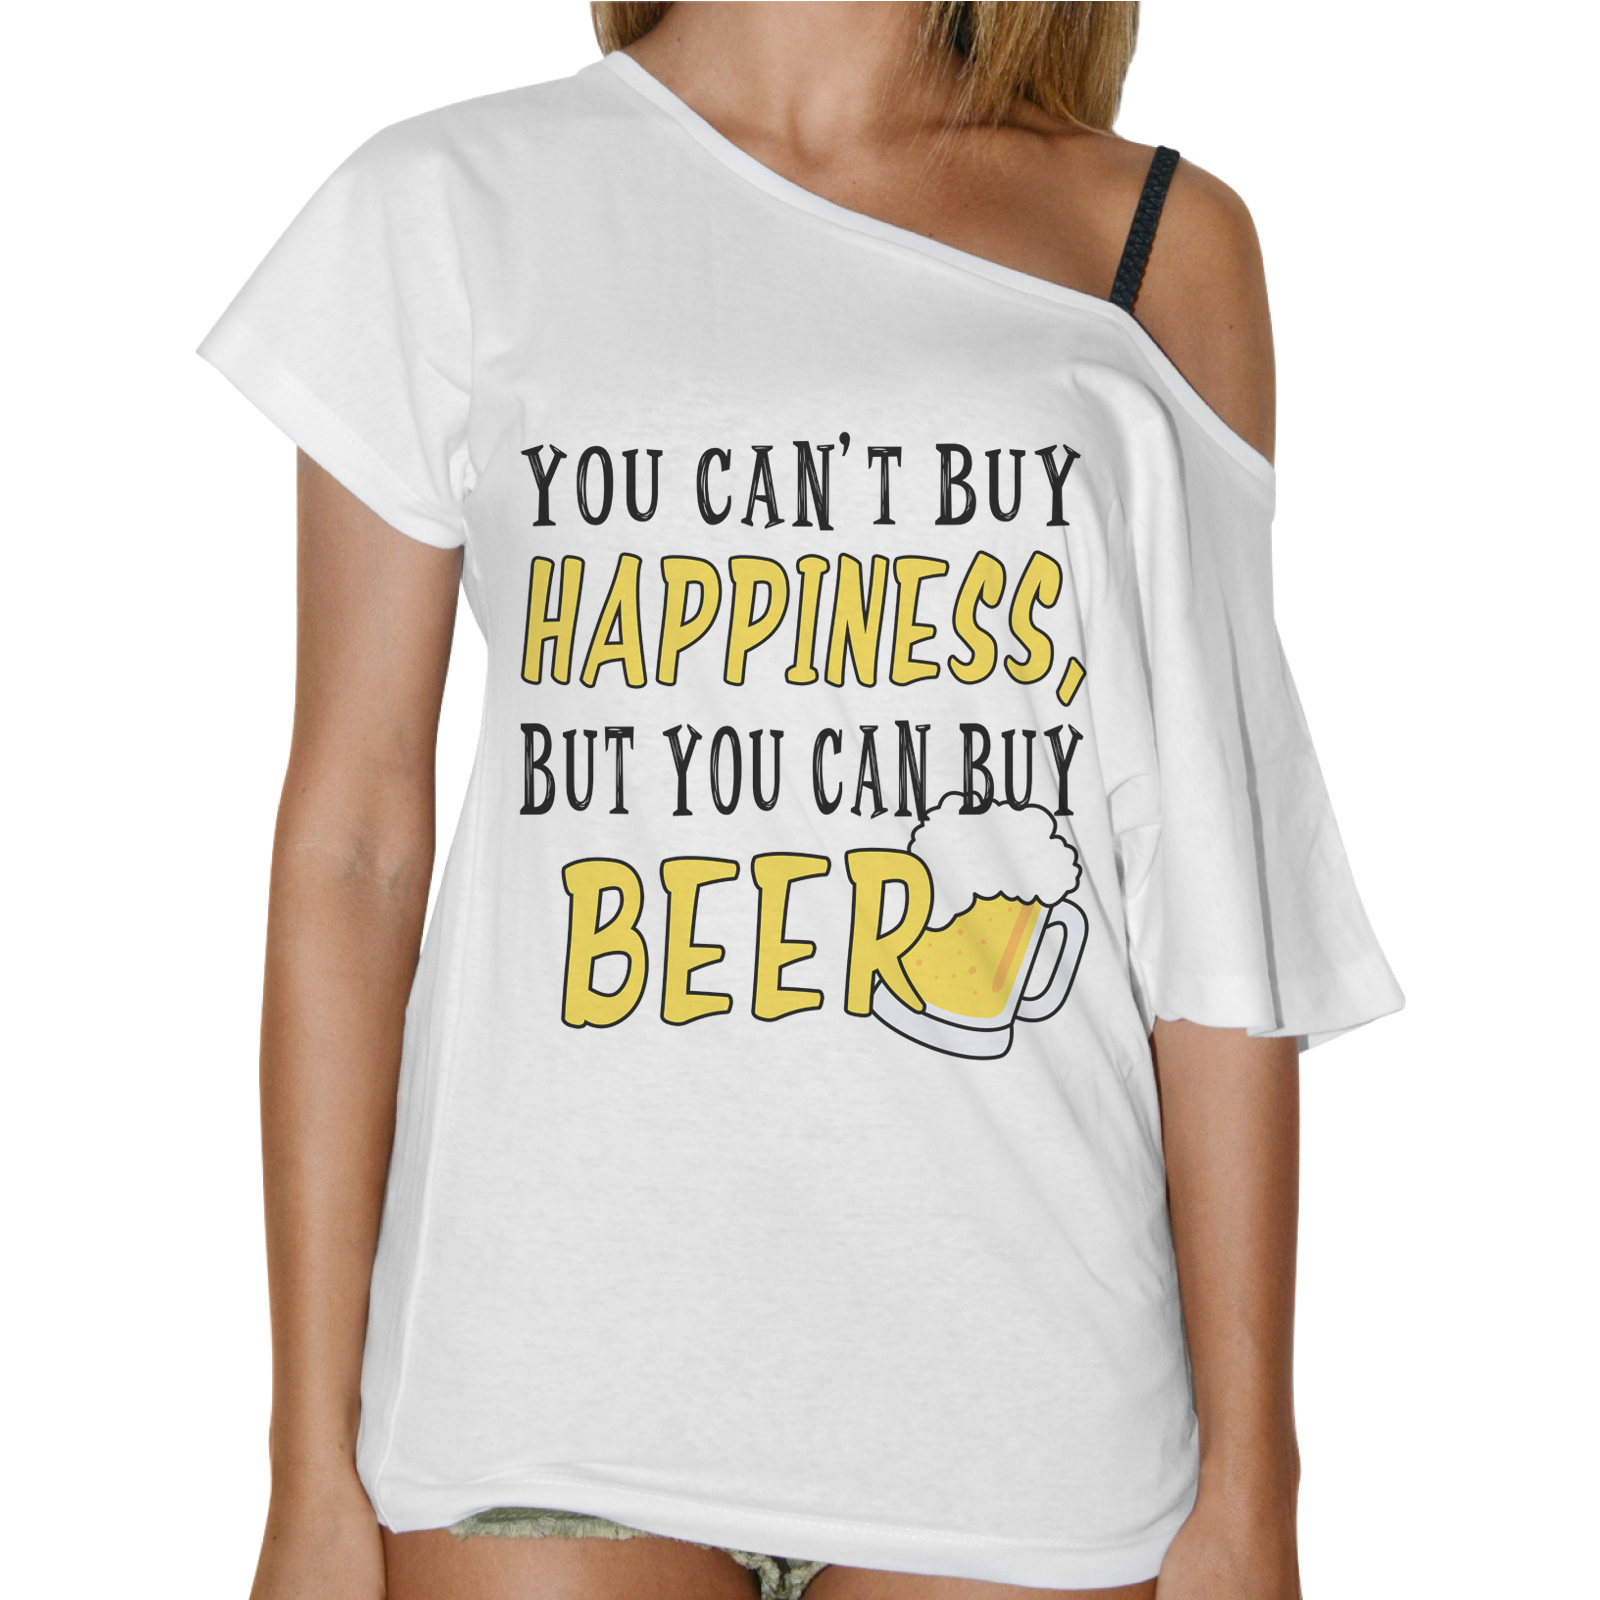 T-Shirt Donna Collo Barca YOU CAN BUY BEER 1